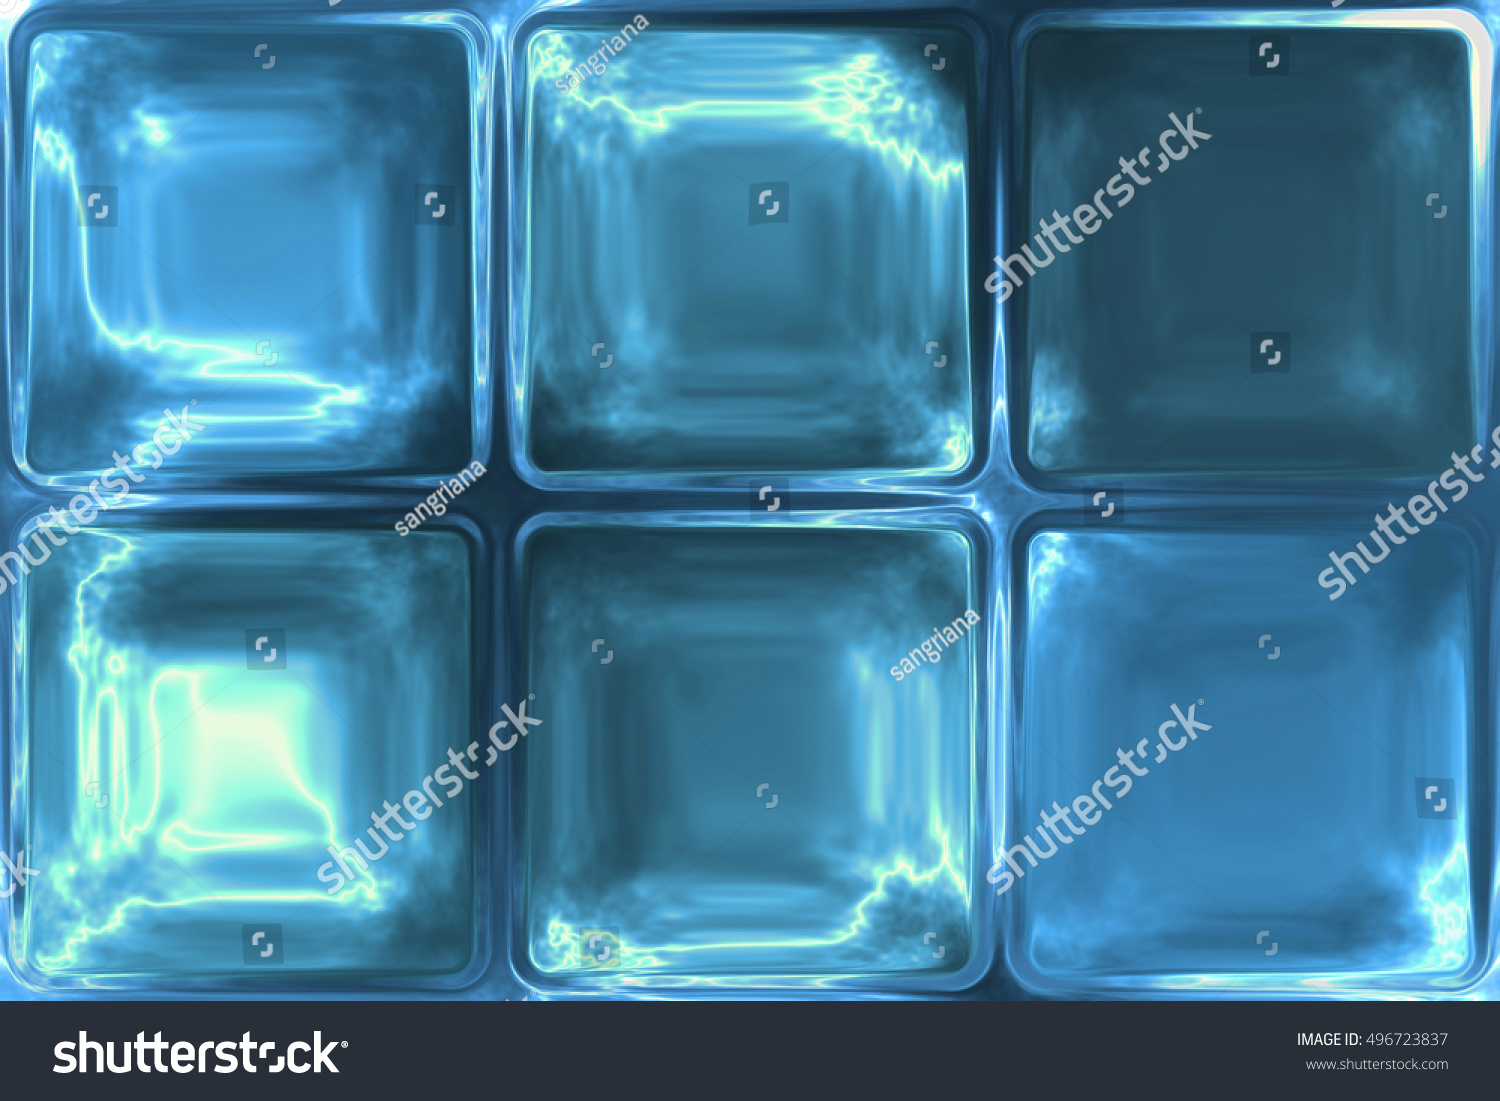 Blue Crystal Ice Icy Glass Tiles Stock Illustration